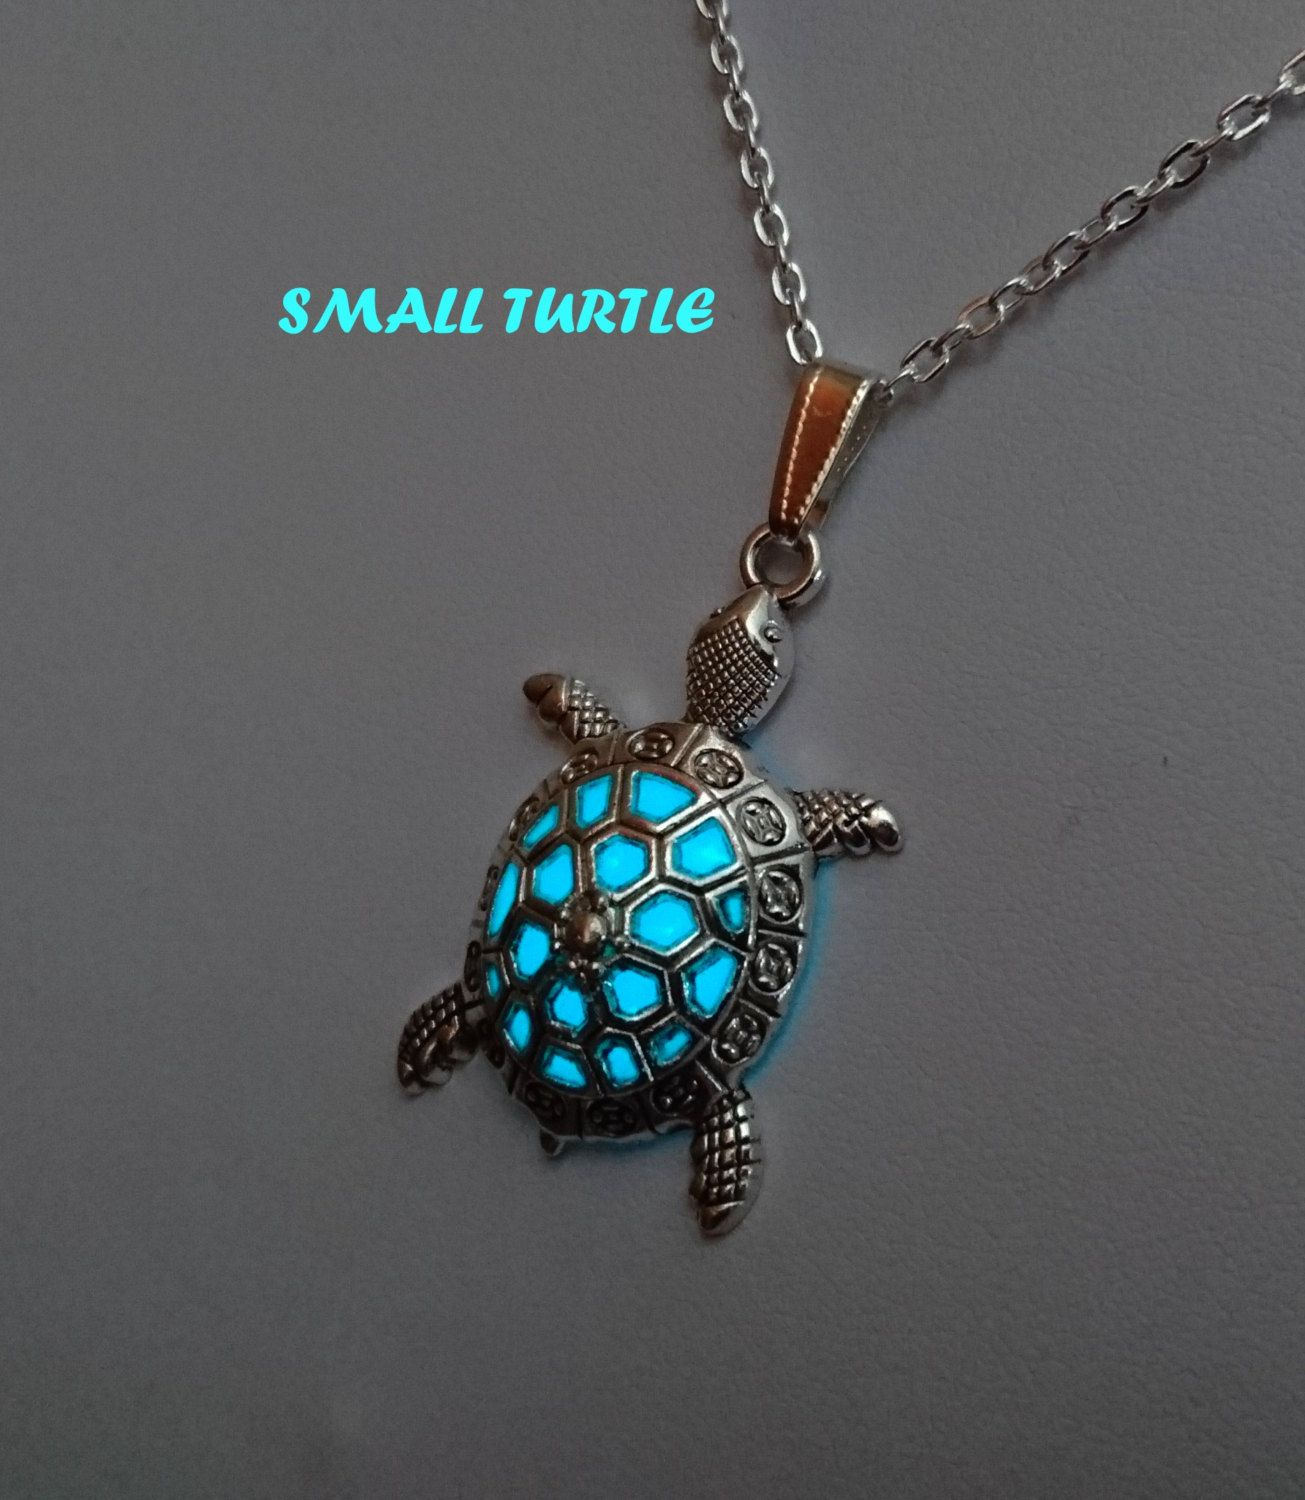 New Glow in the Dark Stainless Steel Chain Sea Turtle Crescent Necklace Pendant